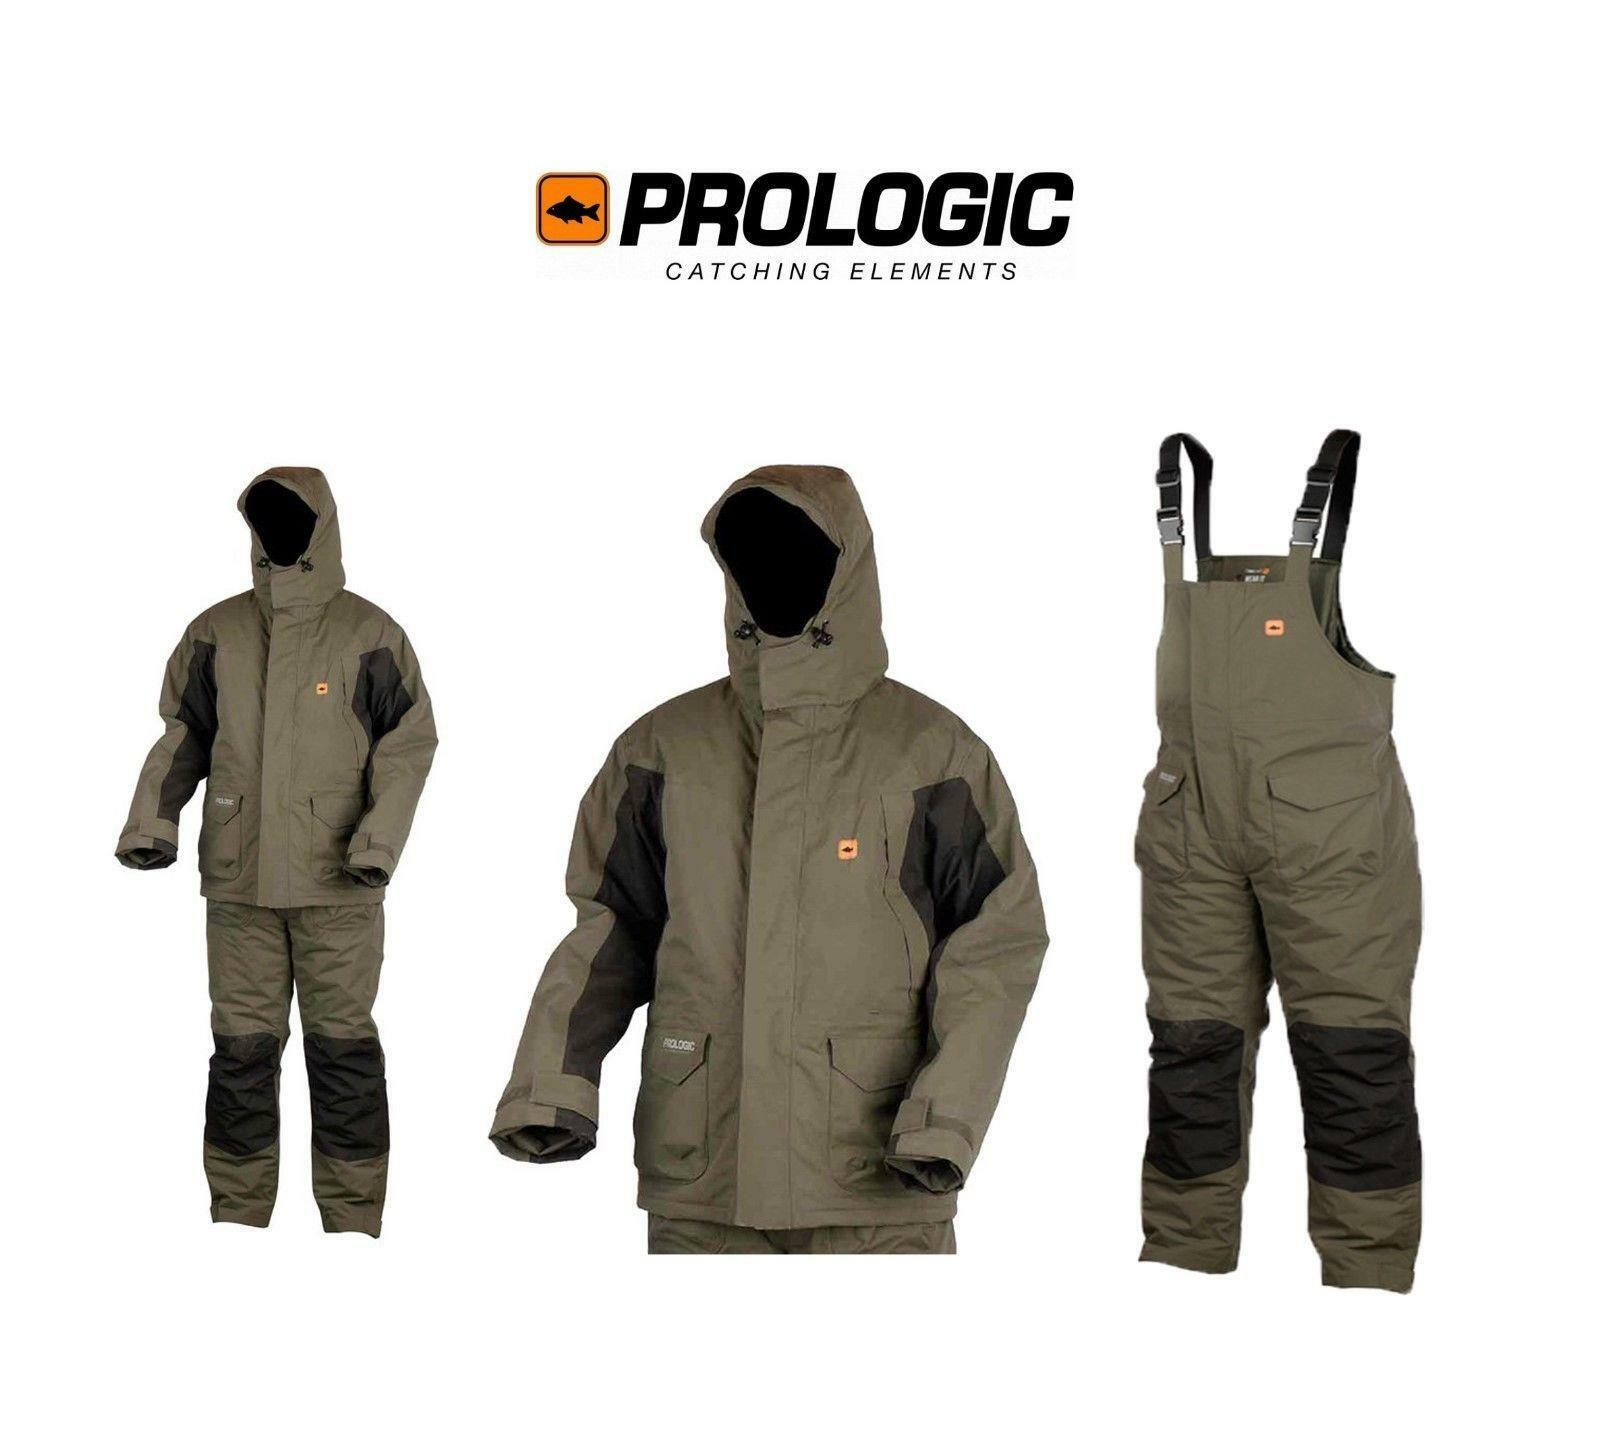 ProLogic Highgrade Thermo Suit All Sizes New 2018 Carp Pike Coarse Fishing